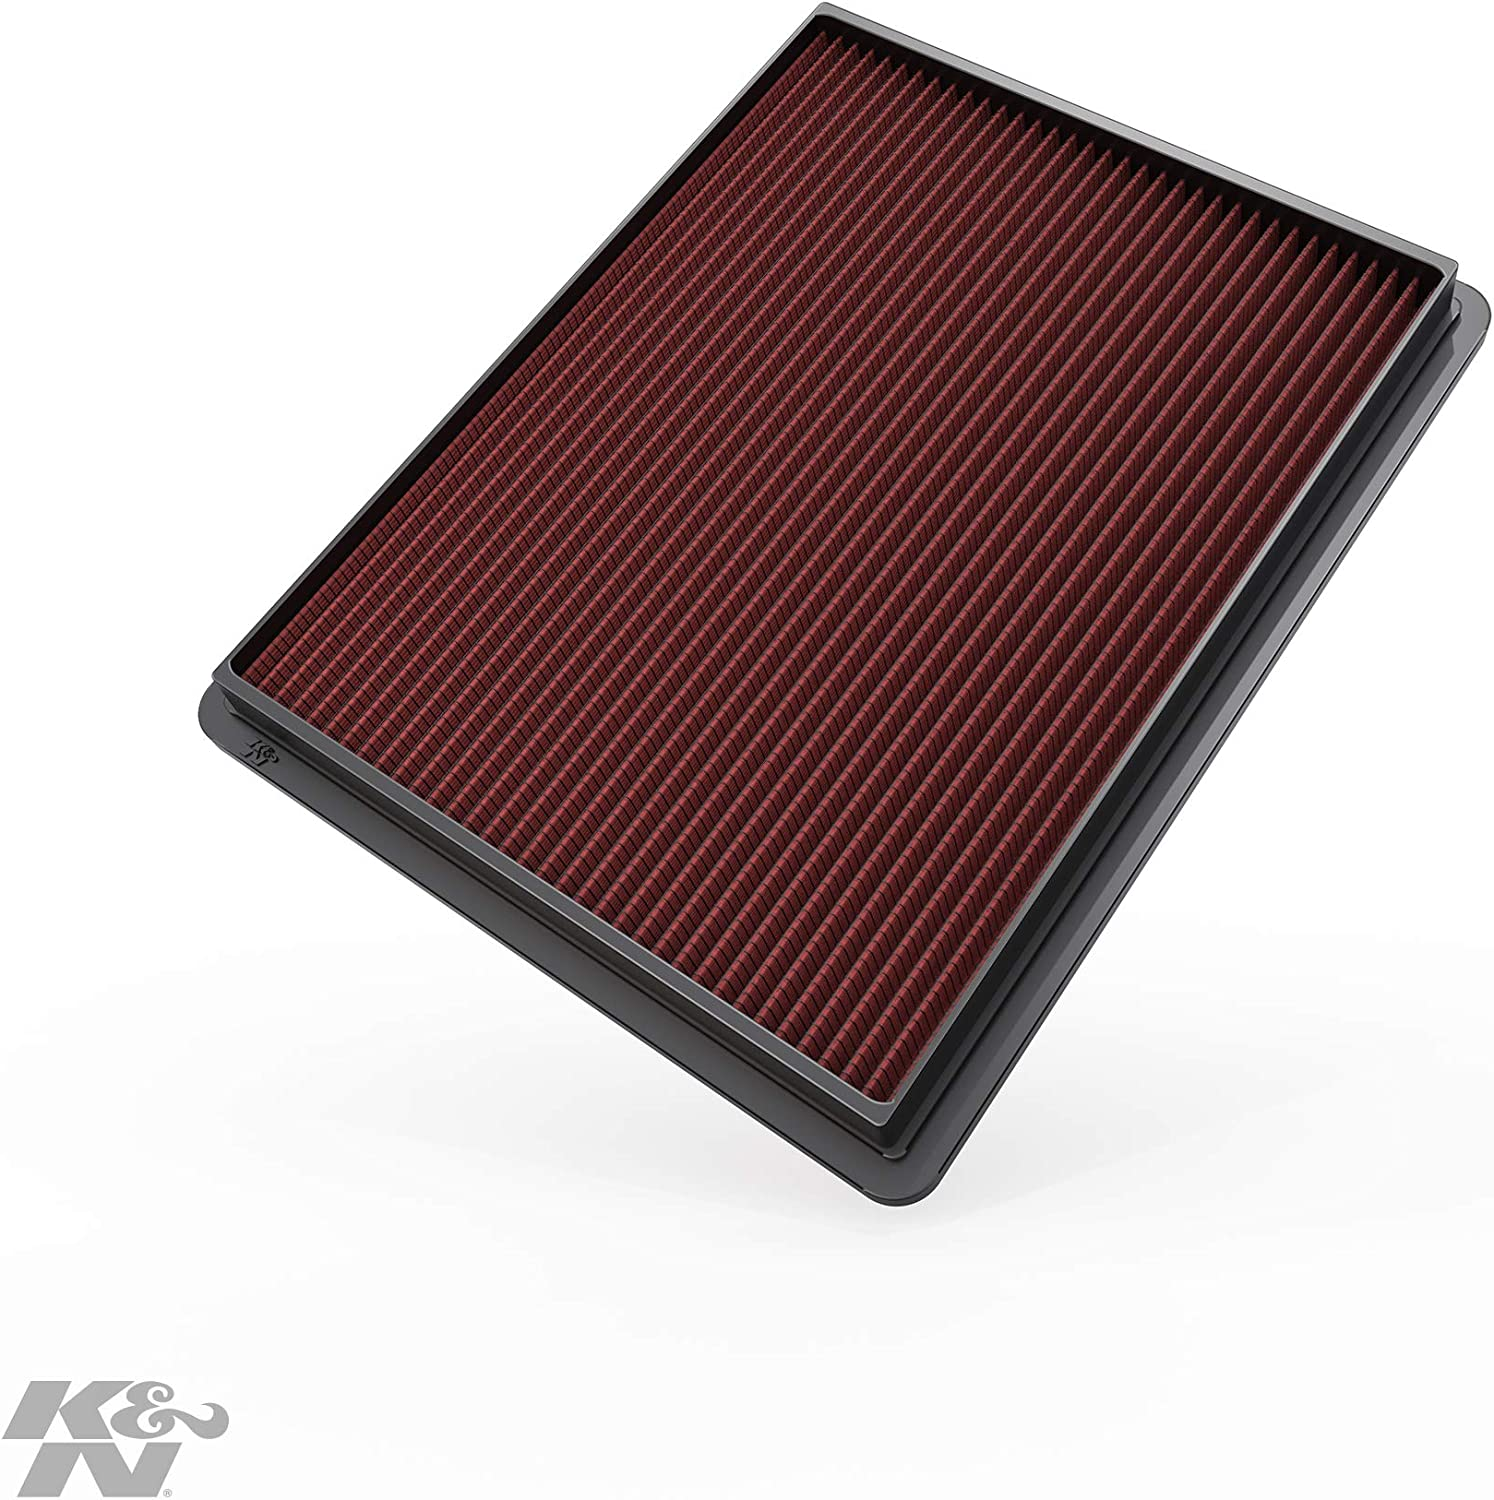 K&N Engine Air Filter: High Performance, Premium, Washable, Replacement Filter: 1999-2019 Chevy/GMC Truck and SUV V6/V8 (Silverado, Suburban, Tahoe, Sierra, Yukon, Avalanche), 33-2129